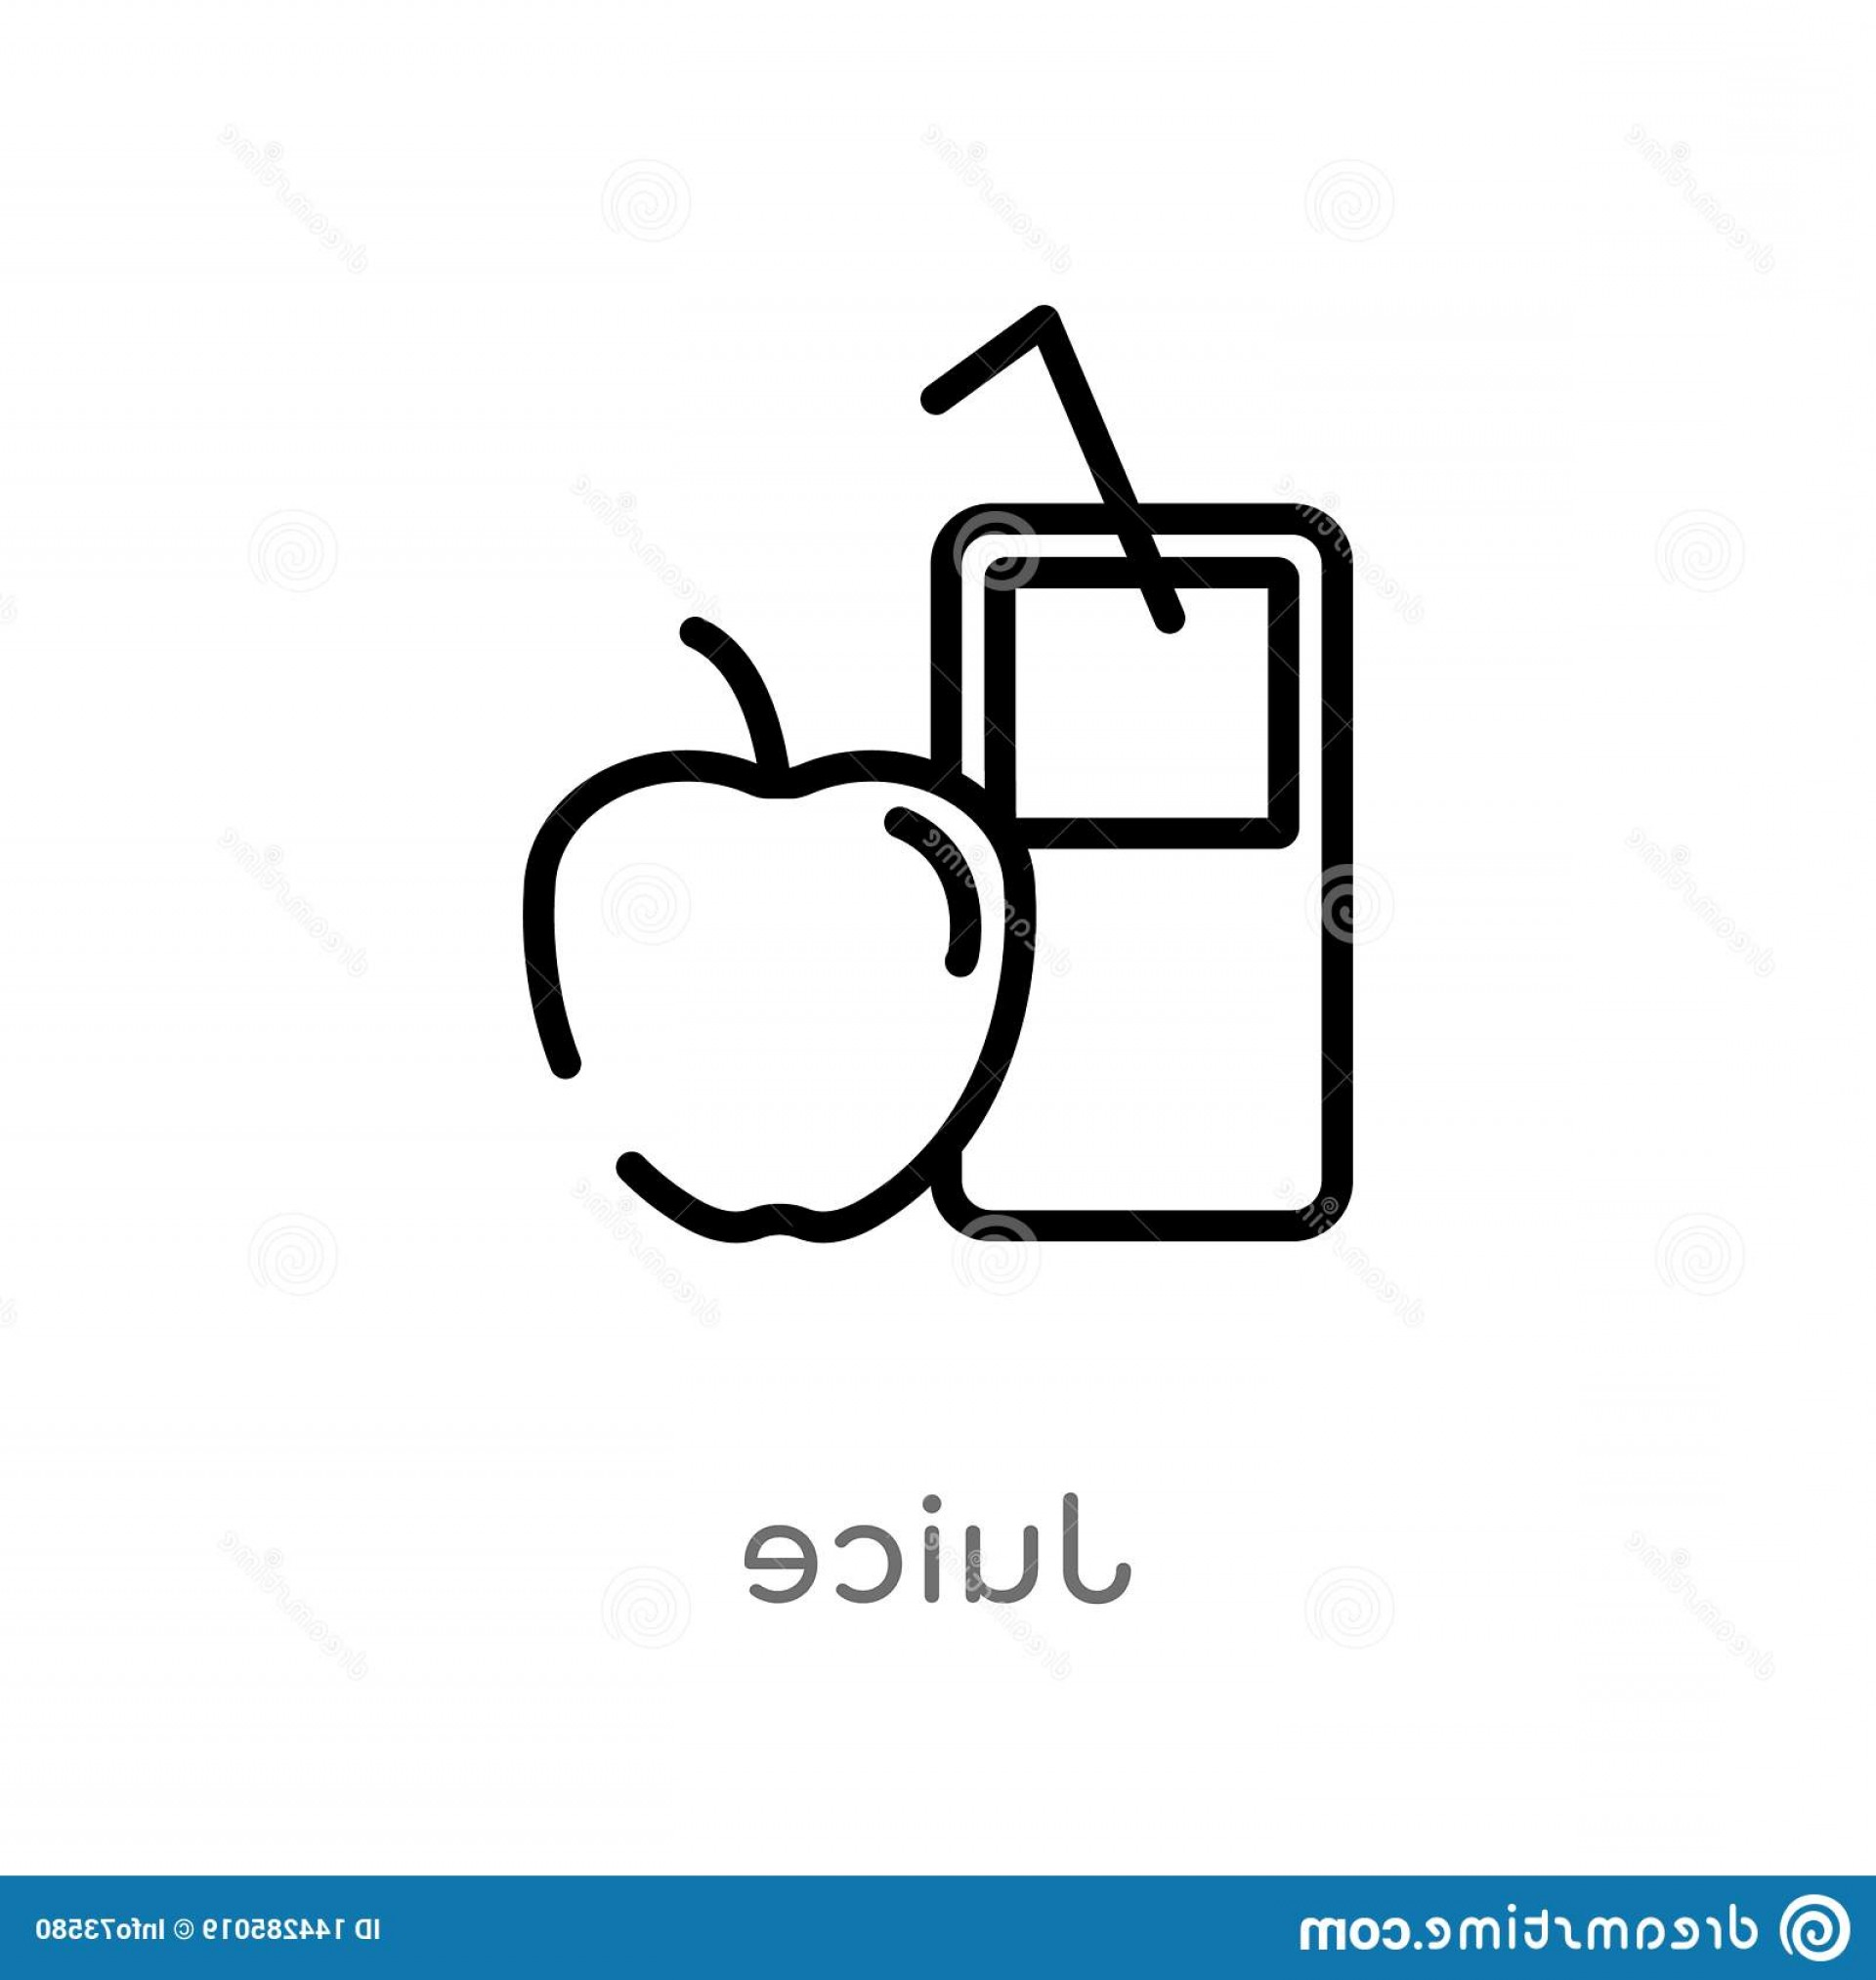 Juice Vector Black: Outline Juice Vector Icon Isolated Black Simple Line Element Illustration Health Concept Editable Stroke White Background Image